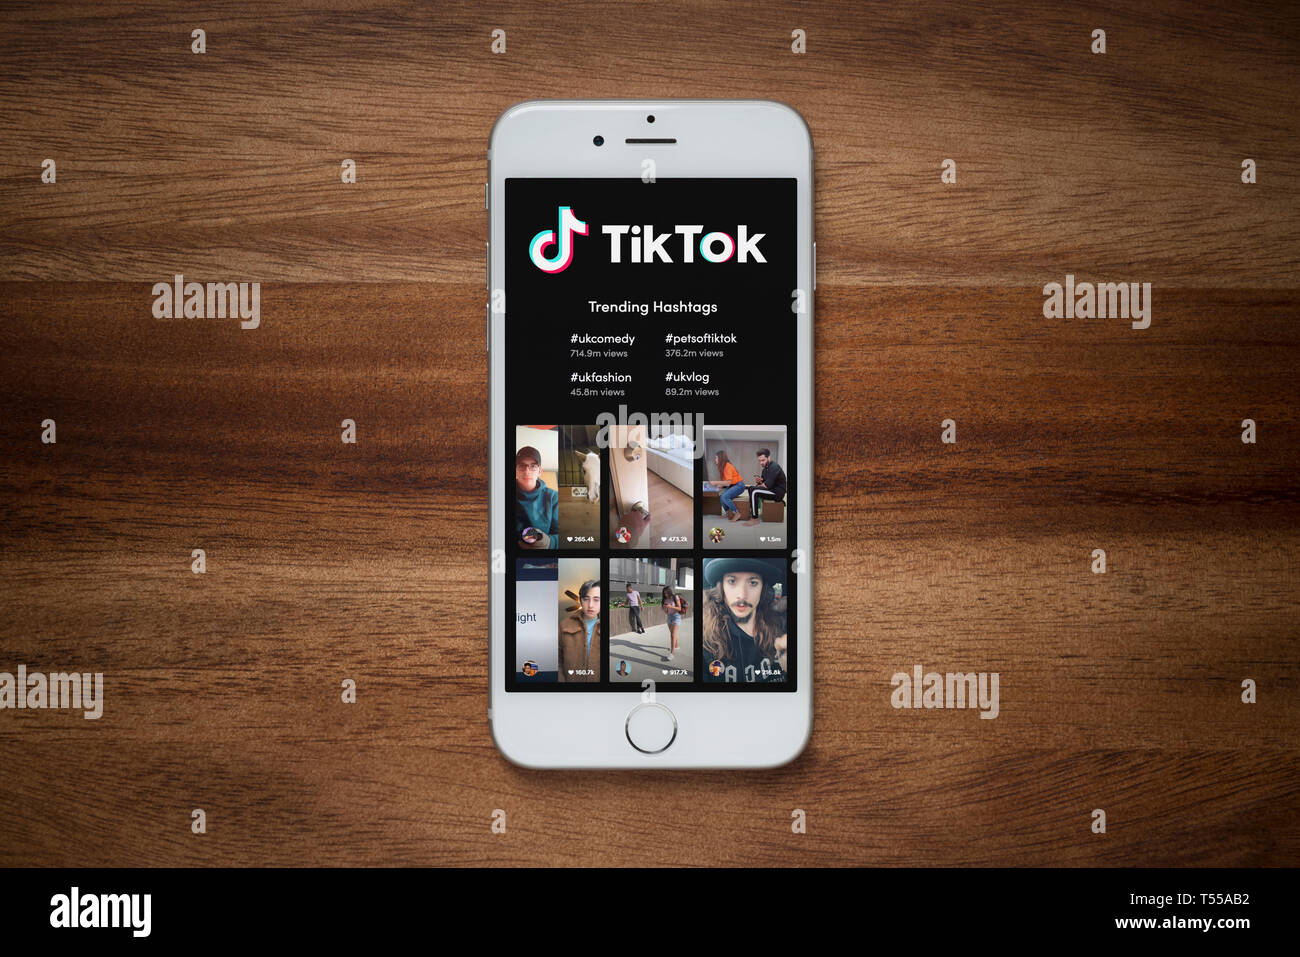 An Iphone Showing The Tik Tok Website Rests On A Plain Wooden Table Editorial Use Only Stock Photo Alamy